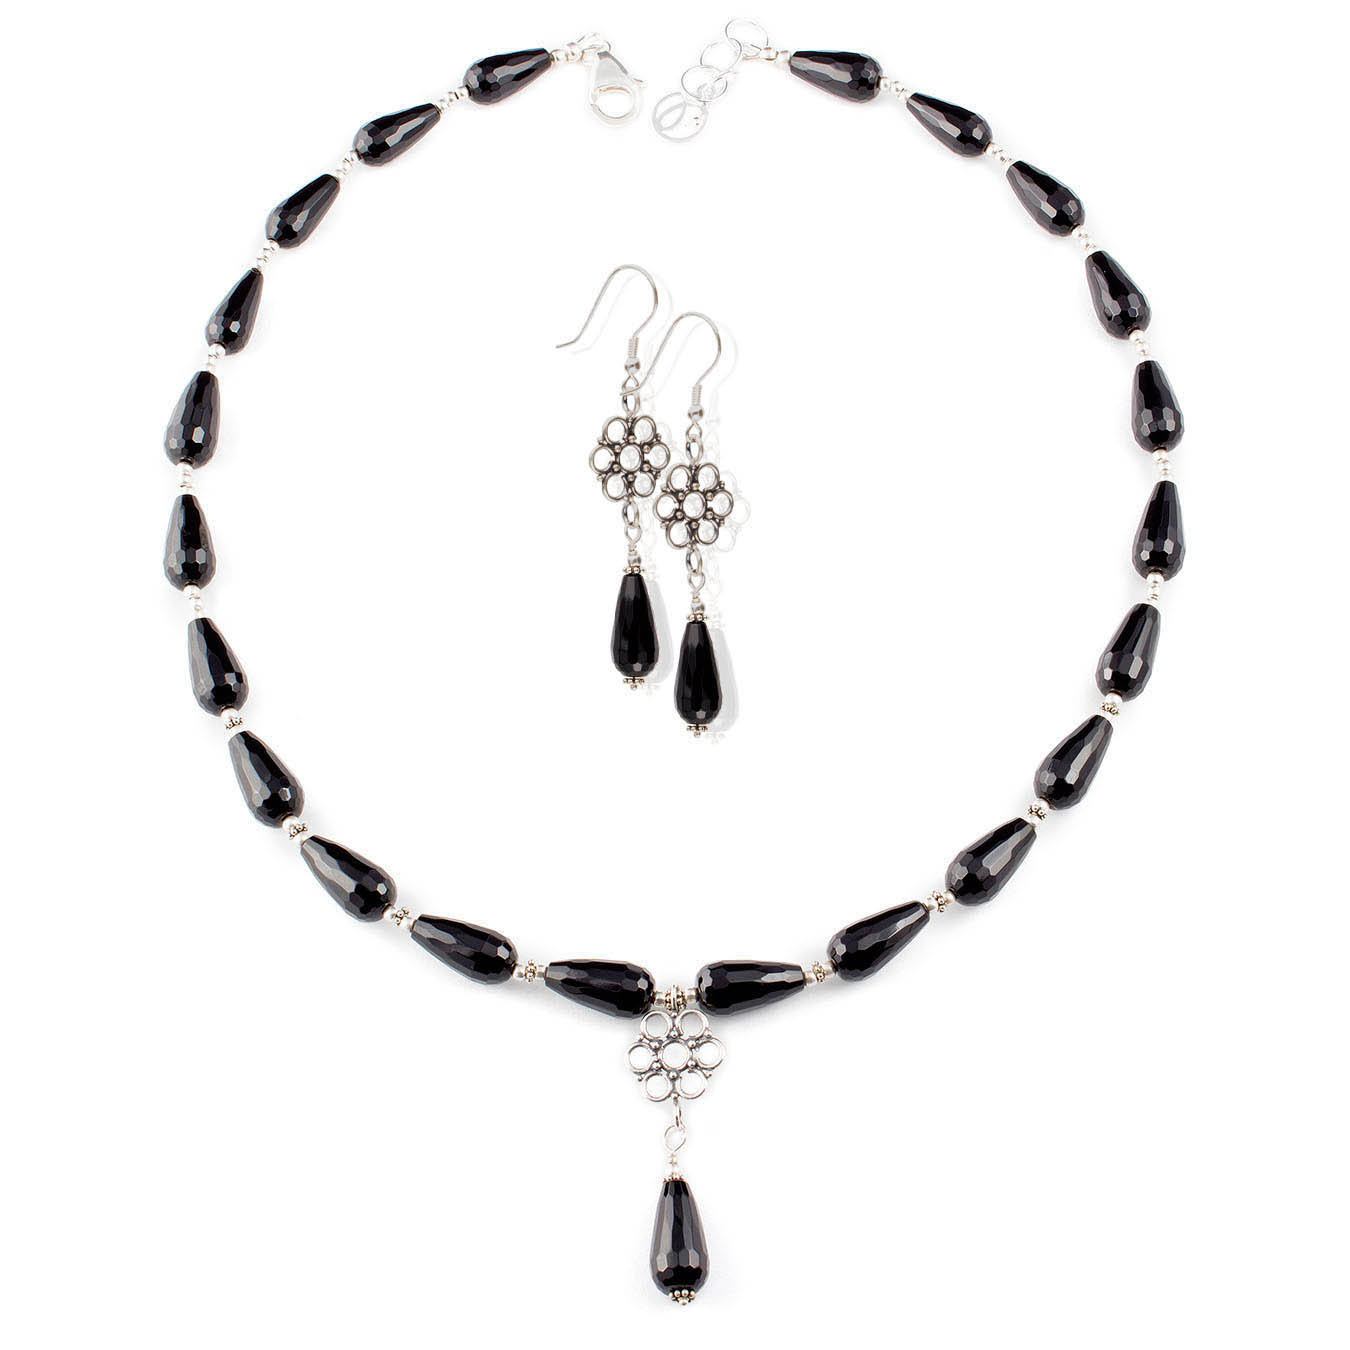 Beaded jewelry necklace made with black agate and bali pendant